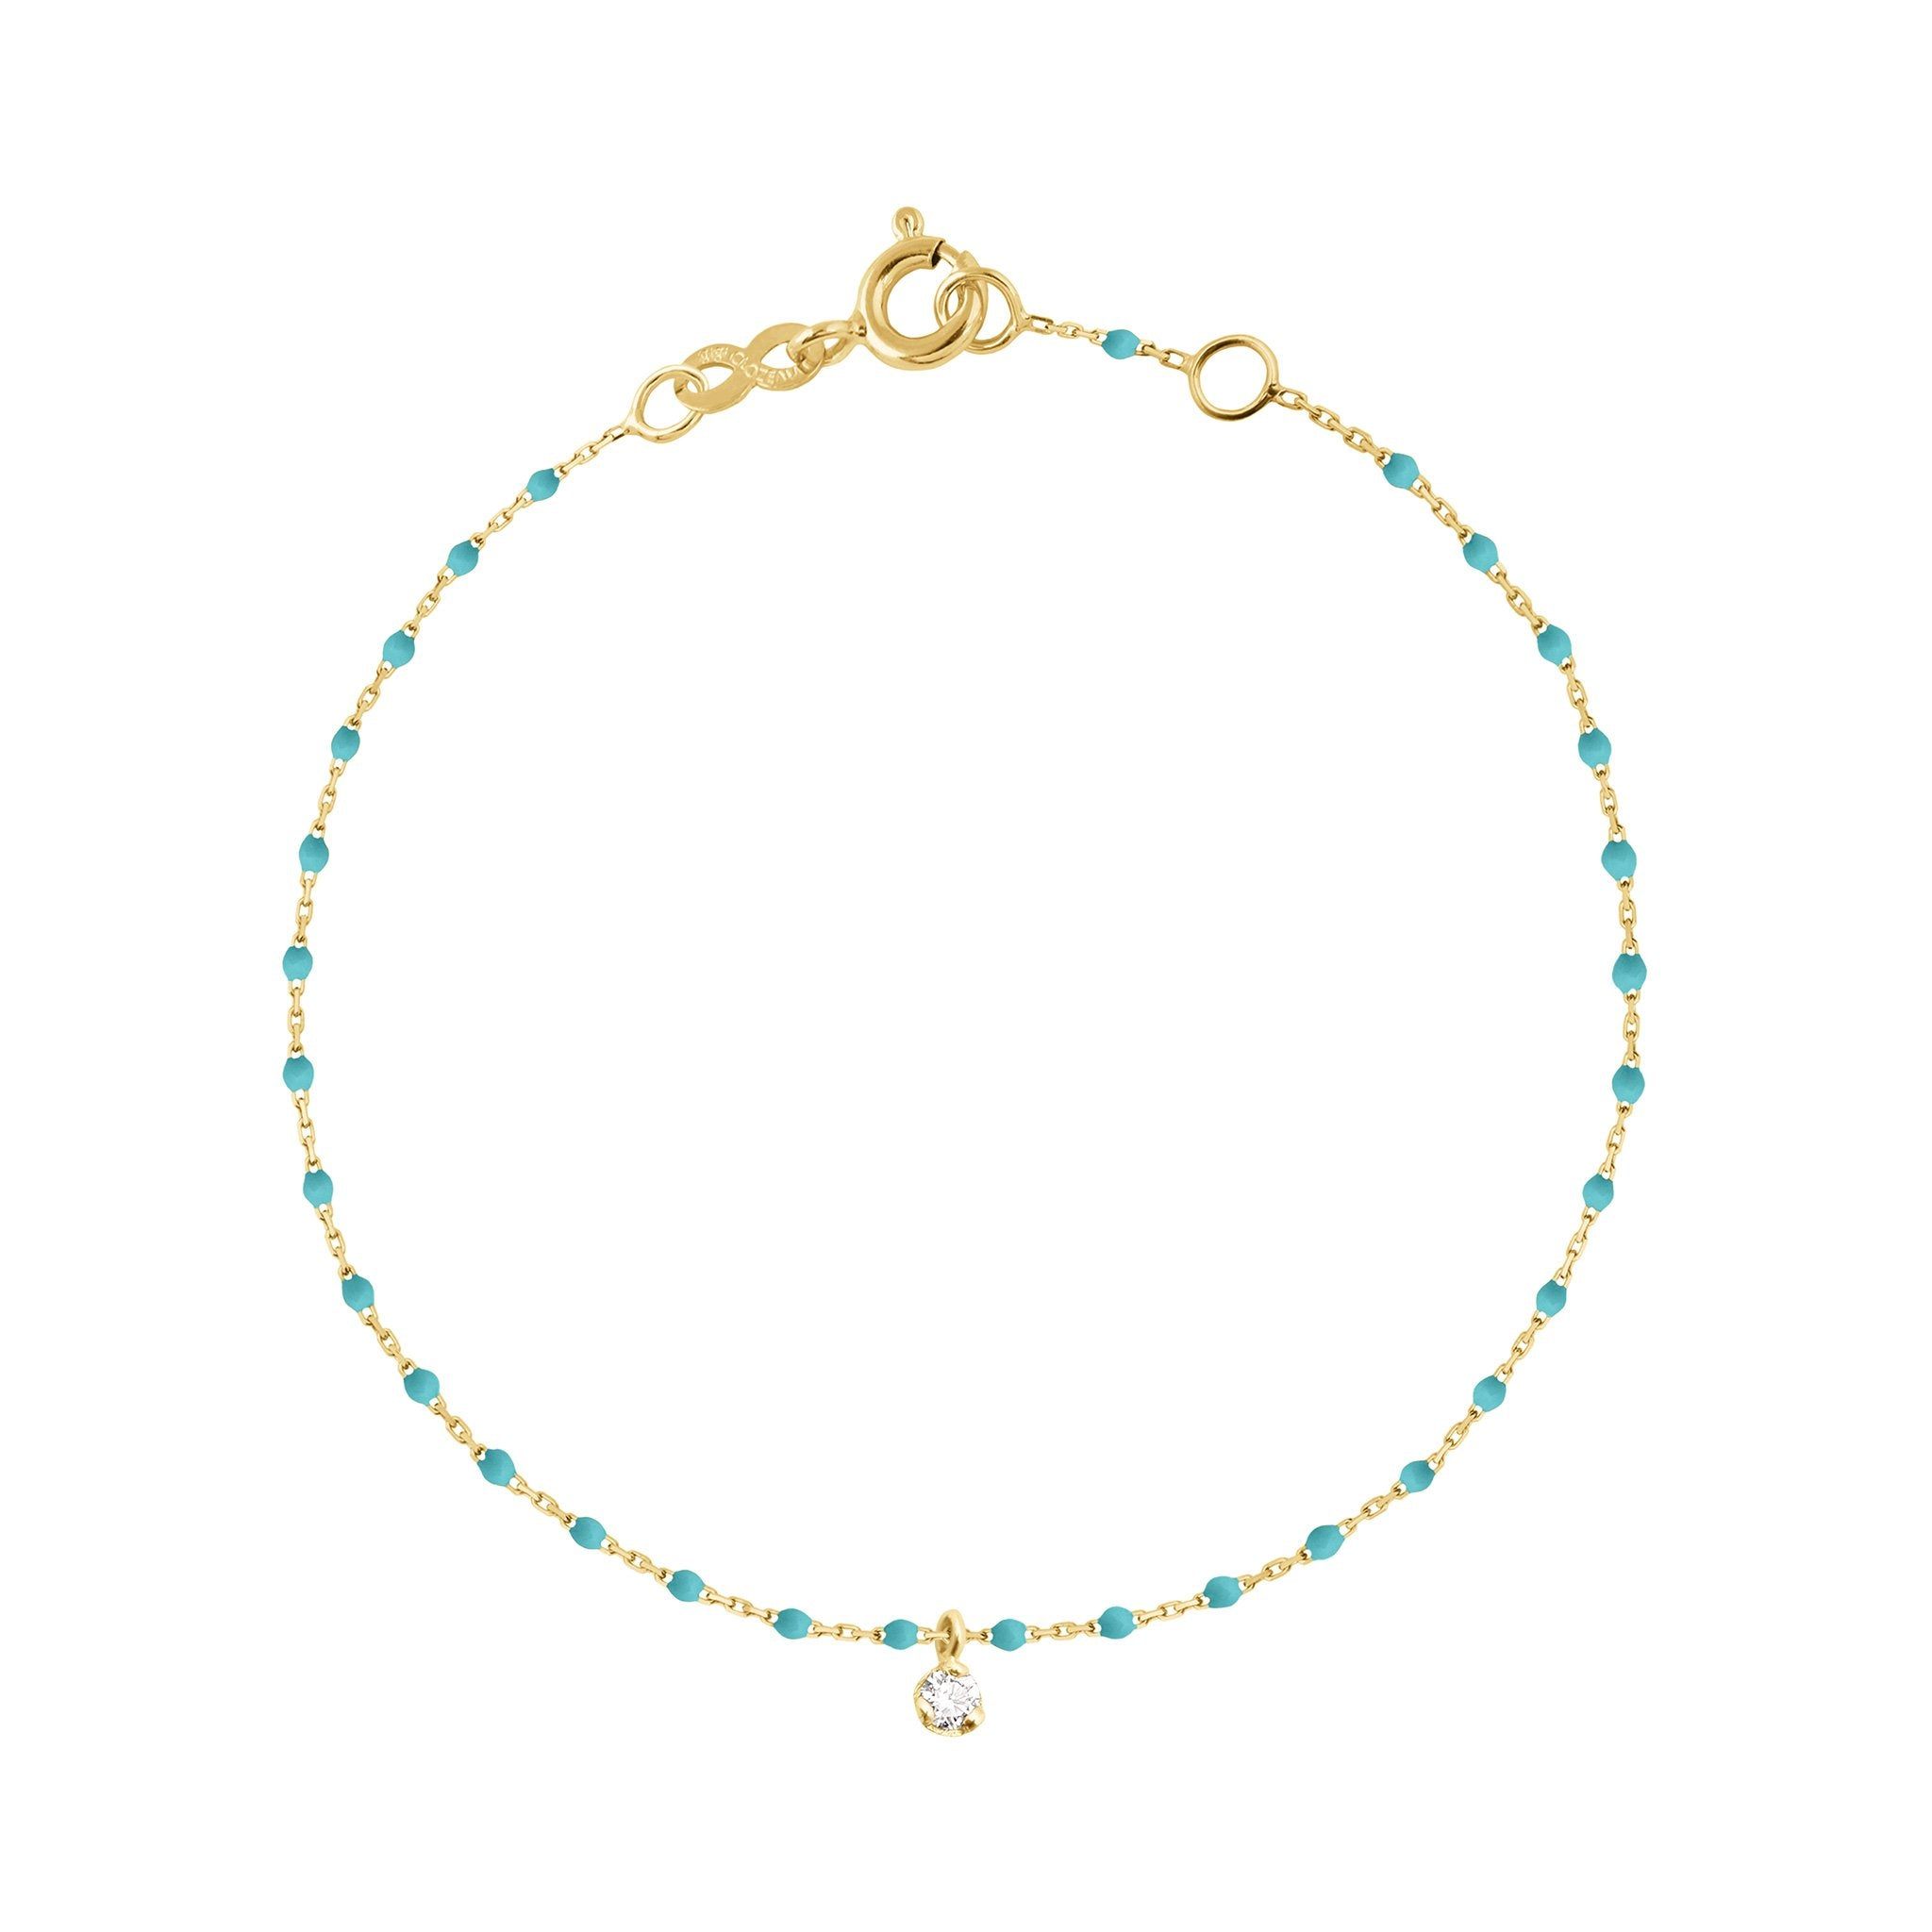 Gigi Clozeau - Mini Gigi Turquoise Green bracelet, Yellow Gold 1 Diamond, 6.7